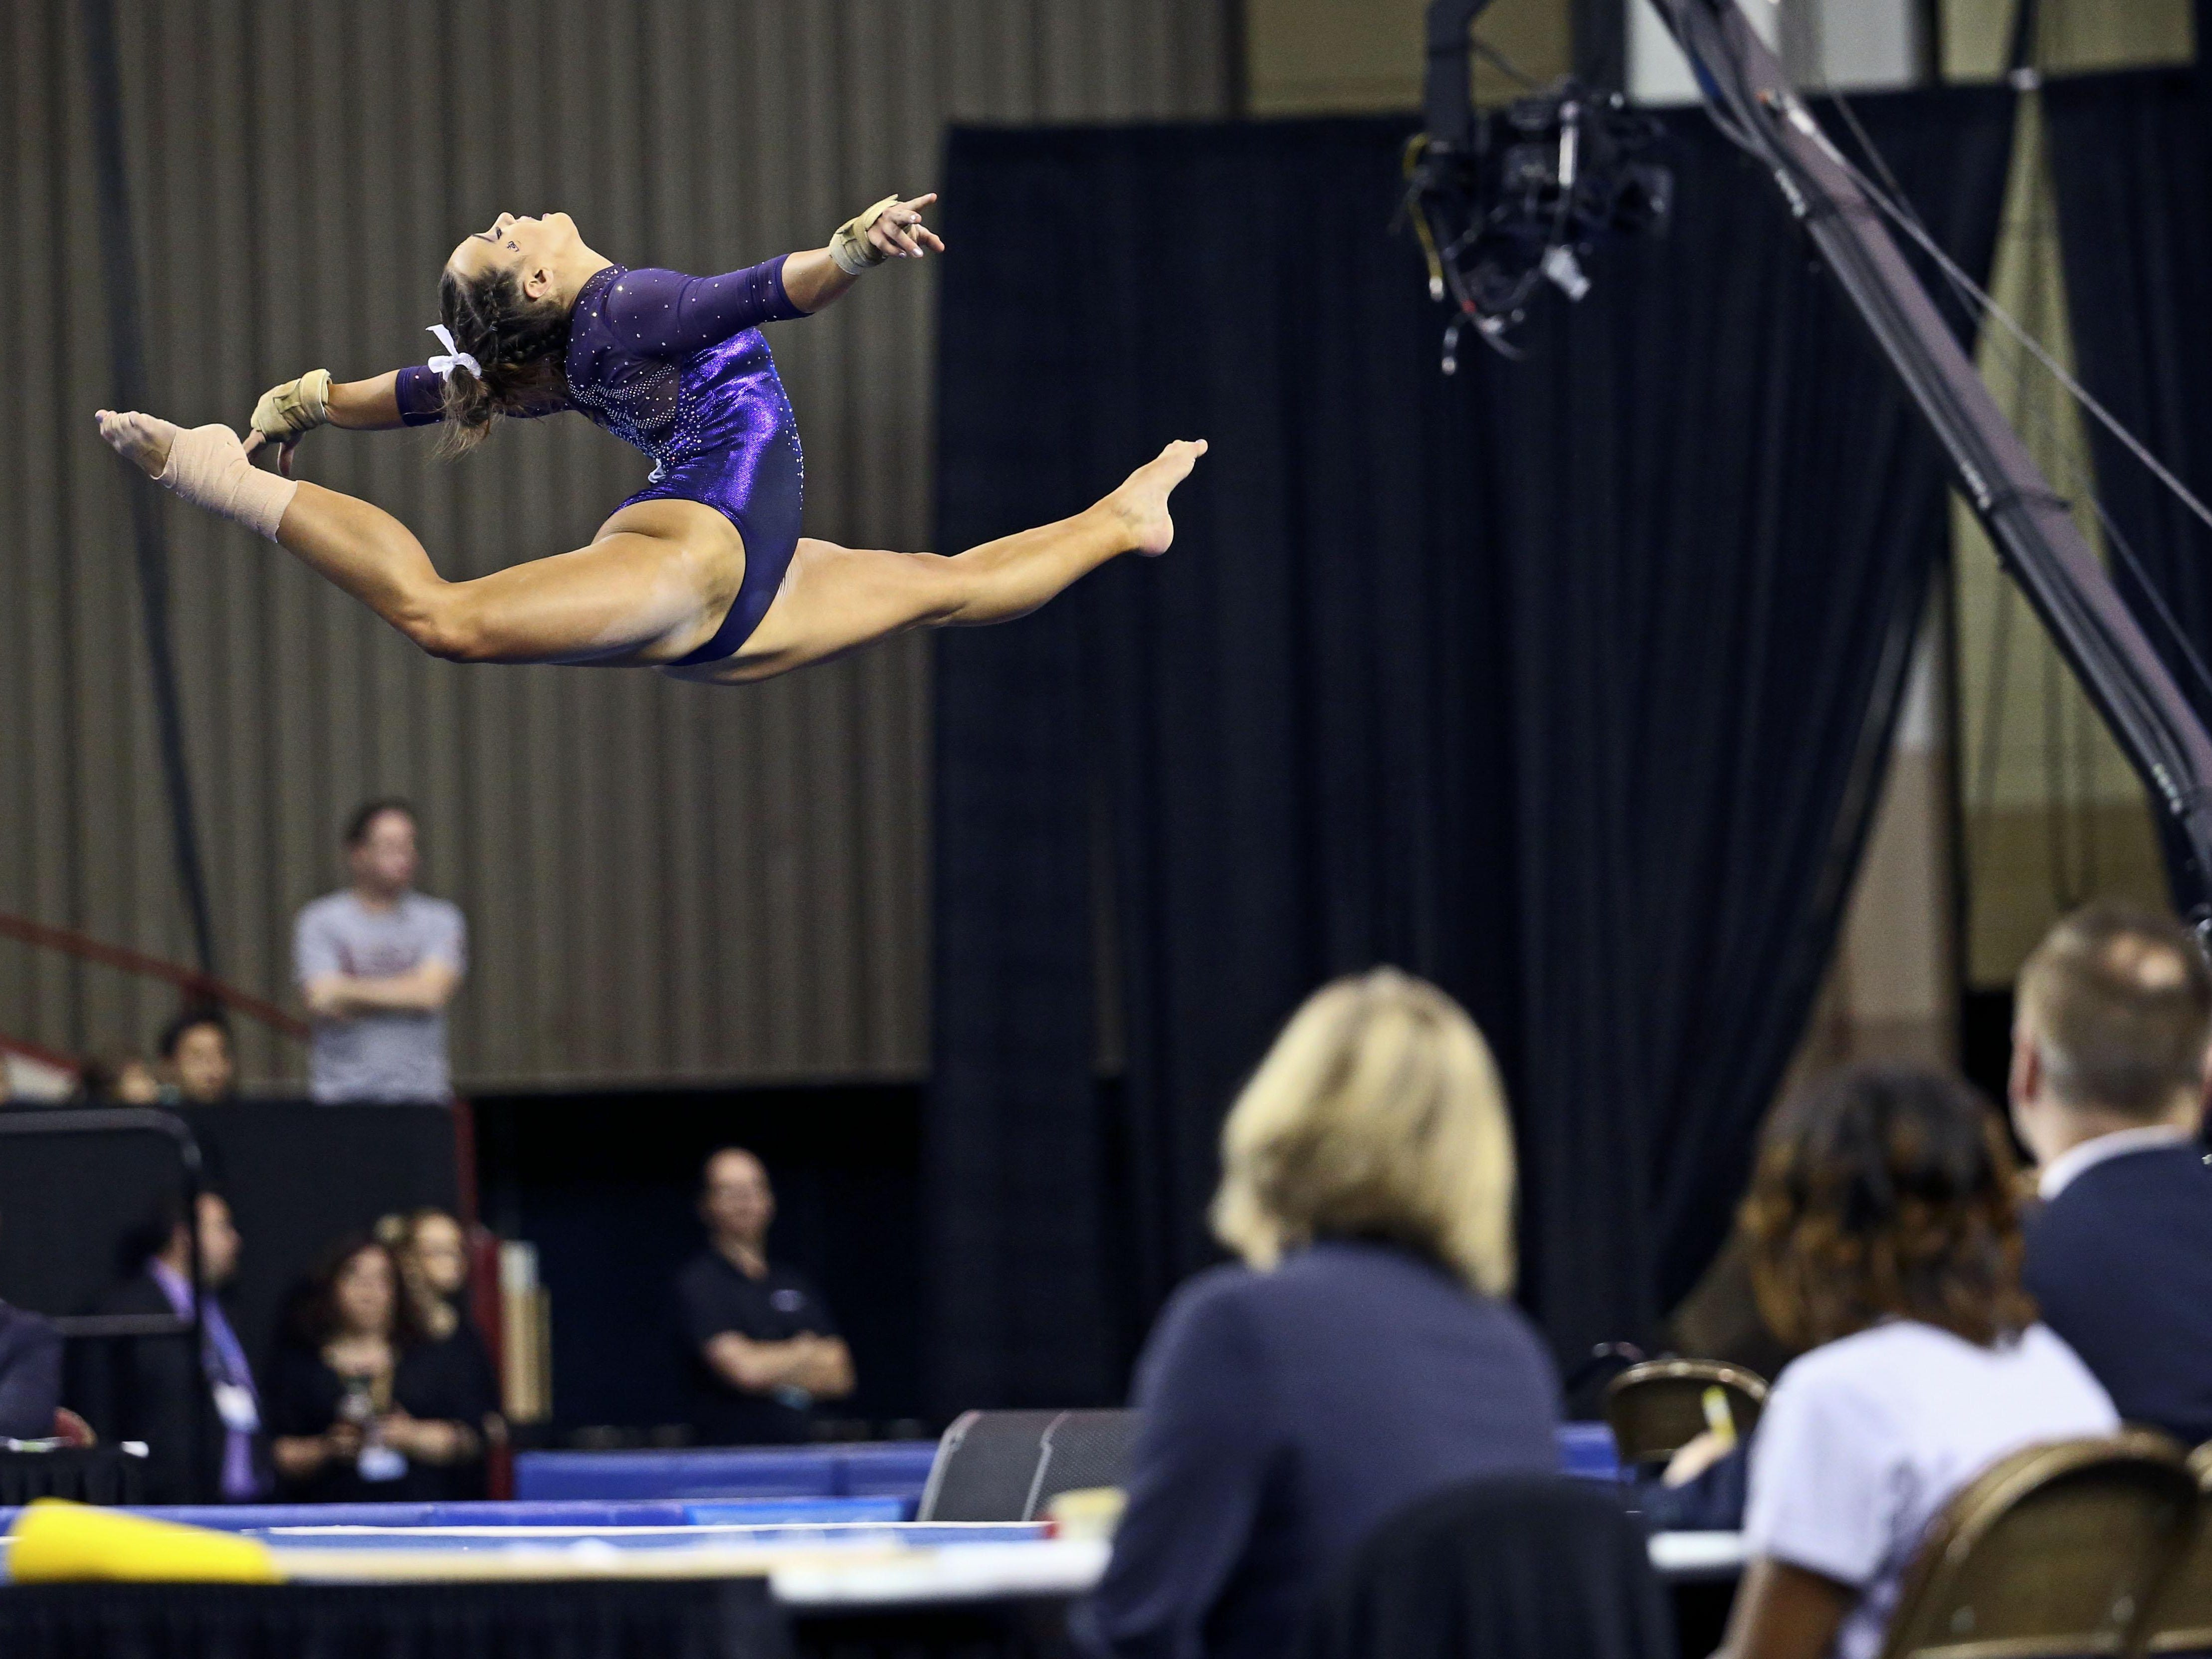 Ashleigh Gnat is the No. 1 in the nation on vault.